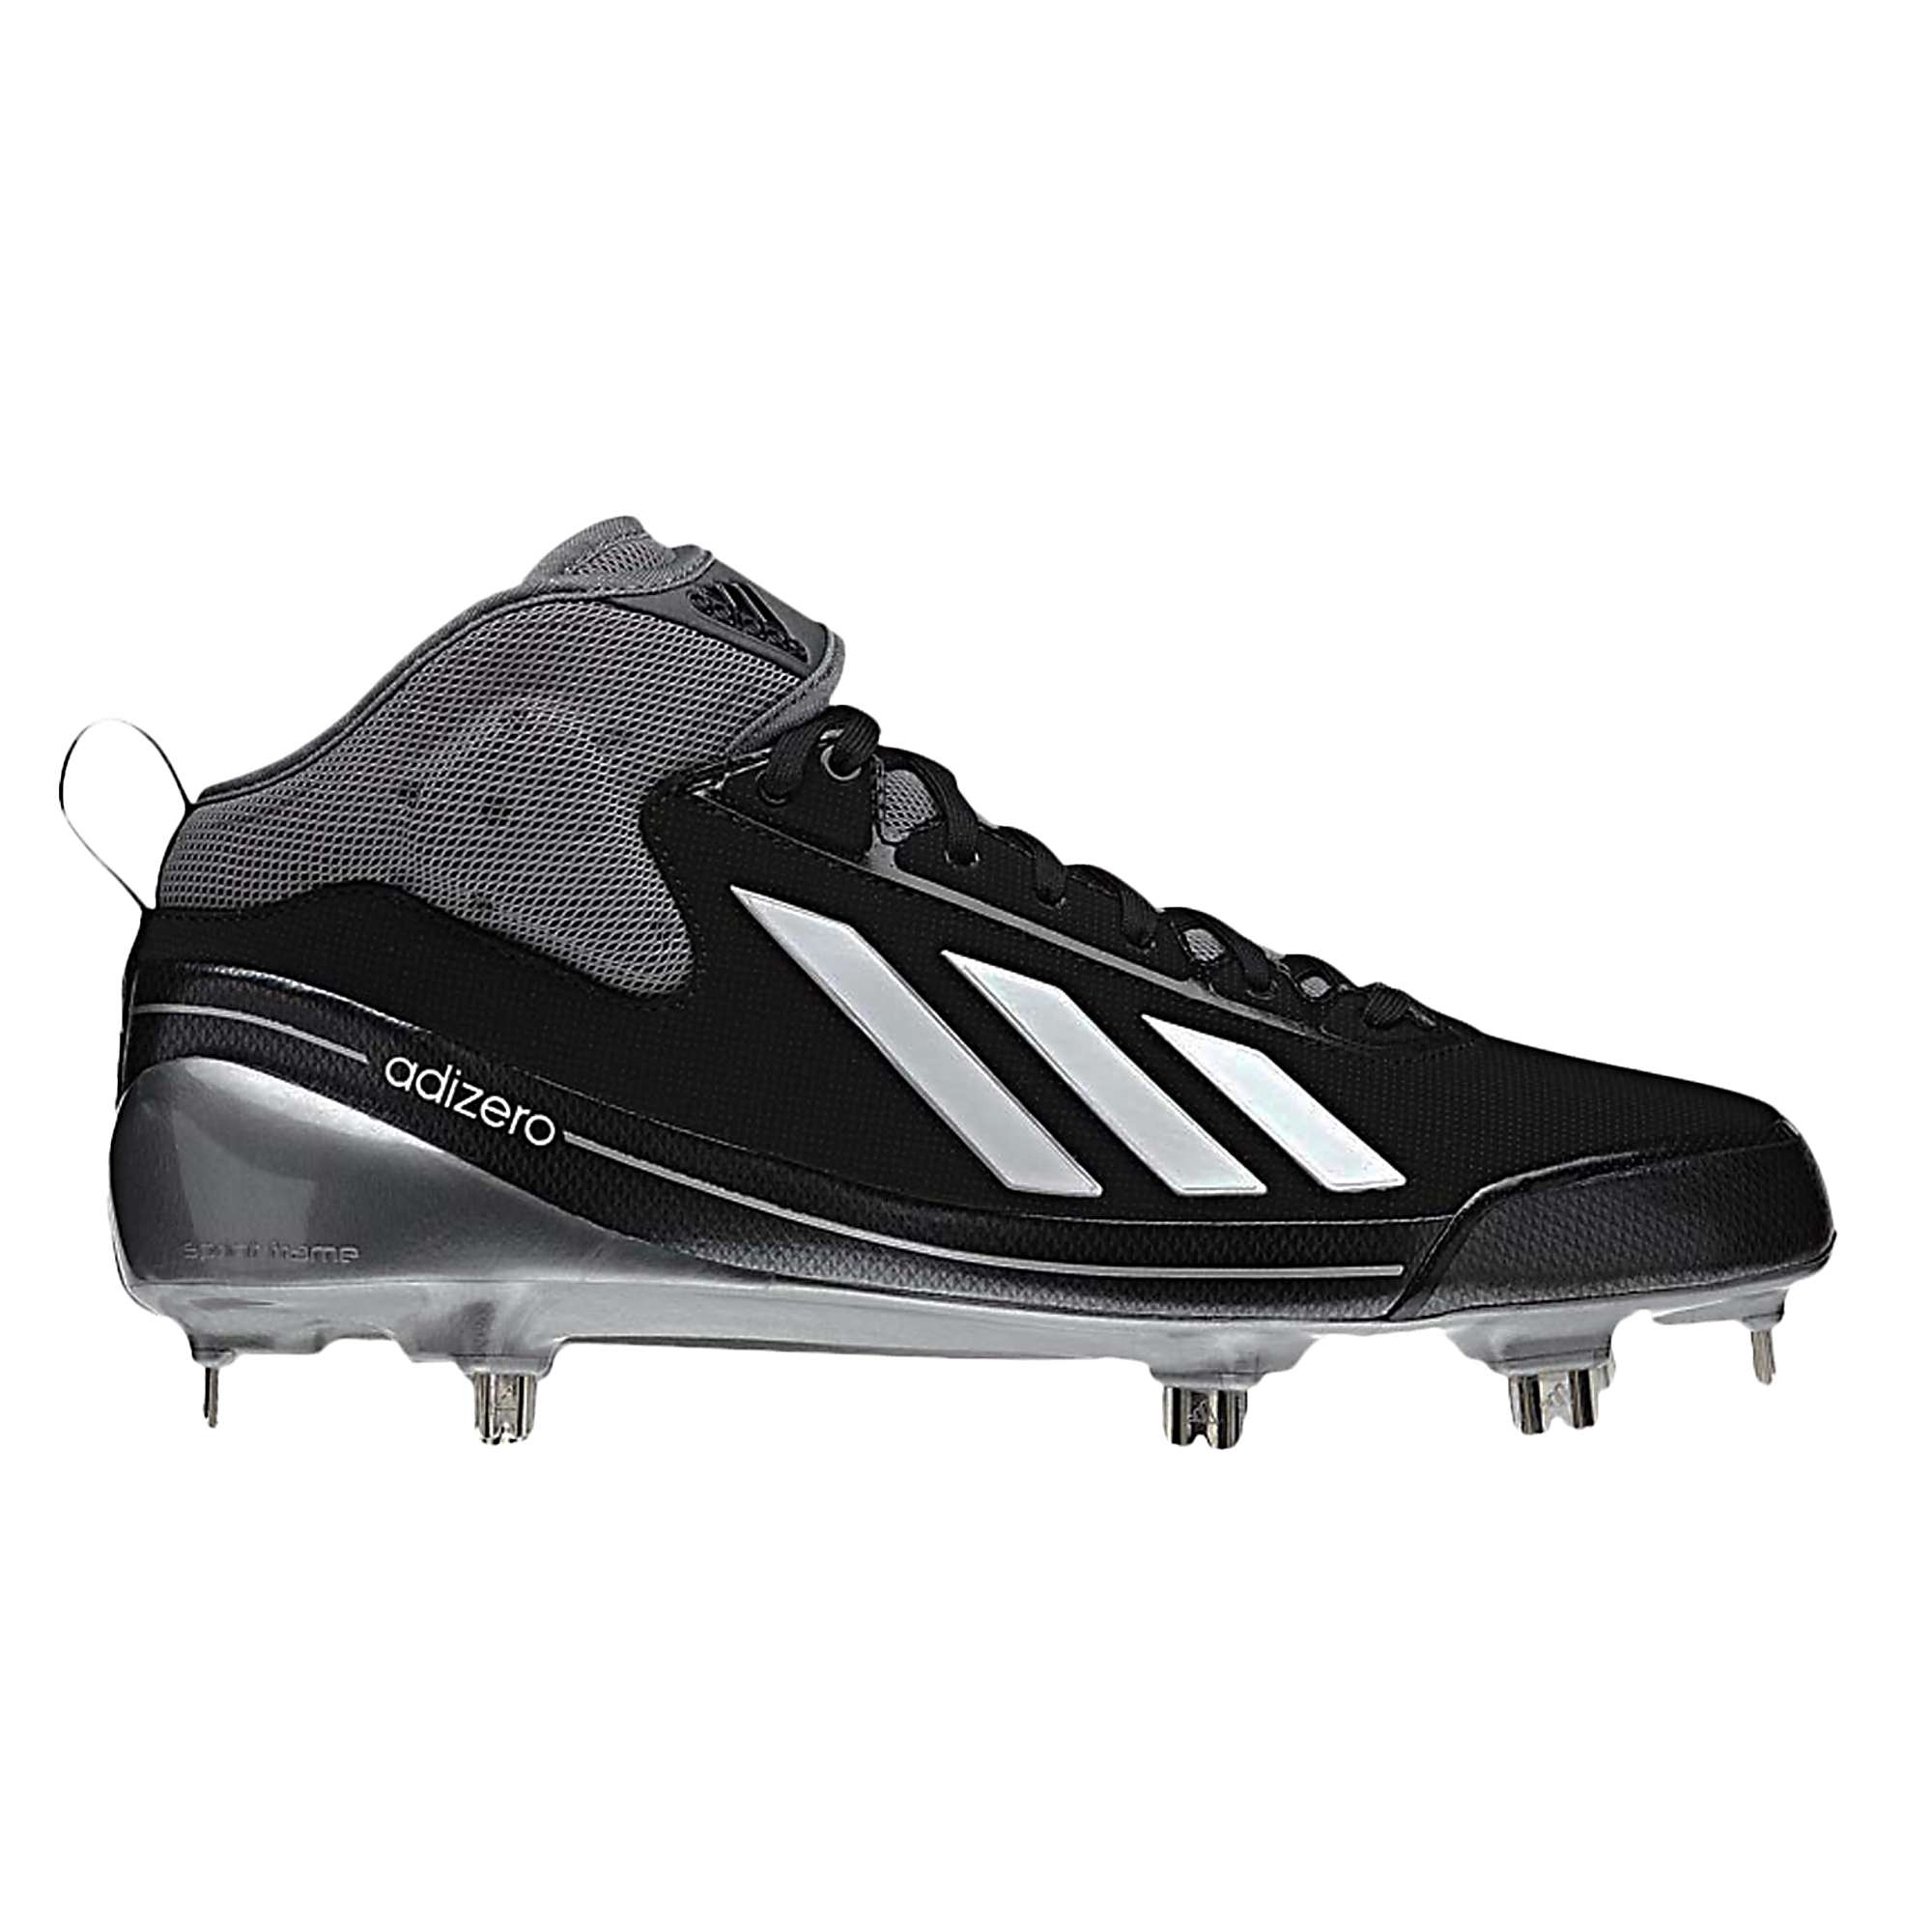 adidas baseball cleats adizero